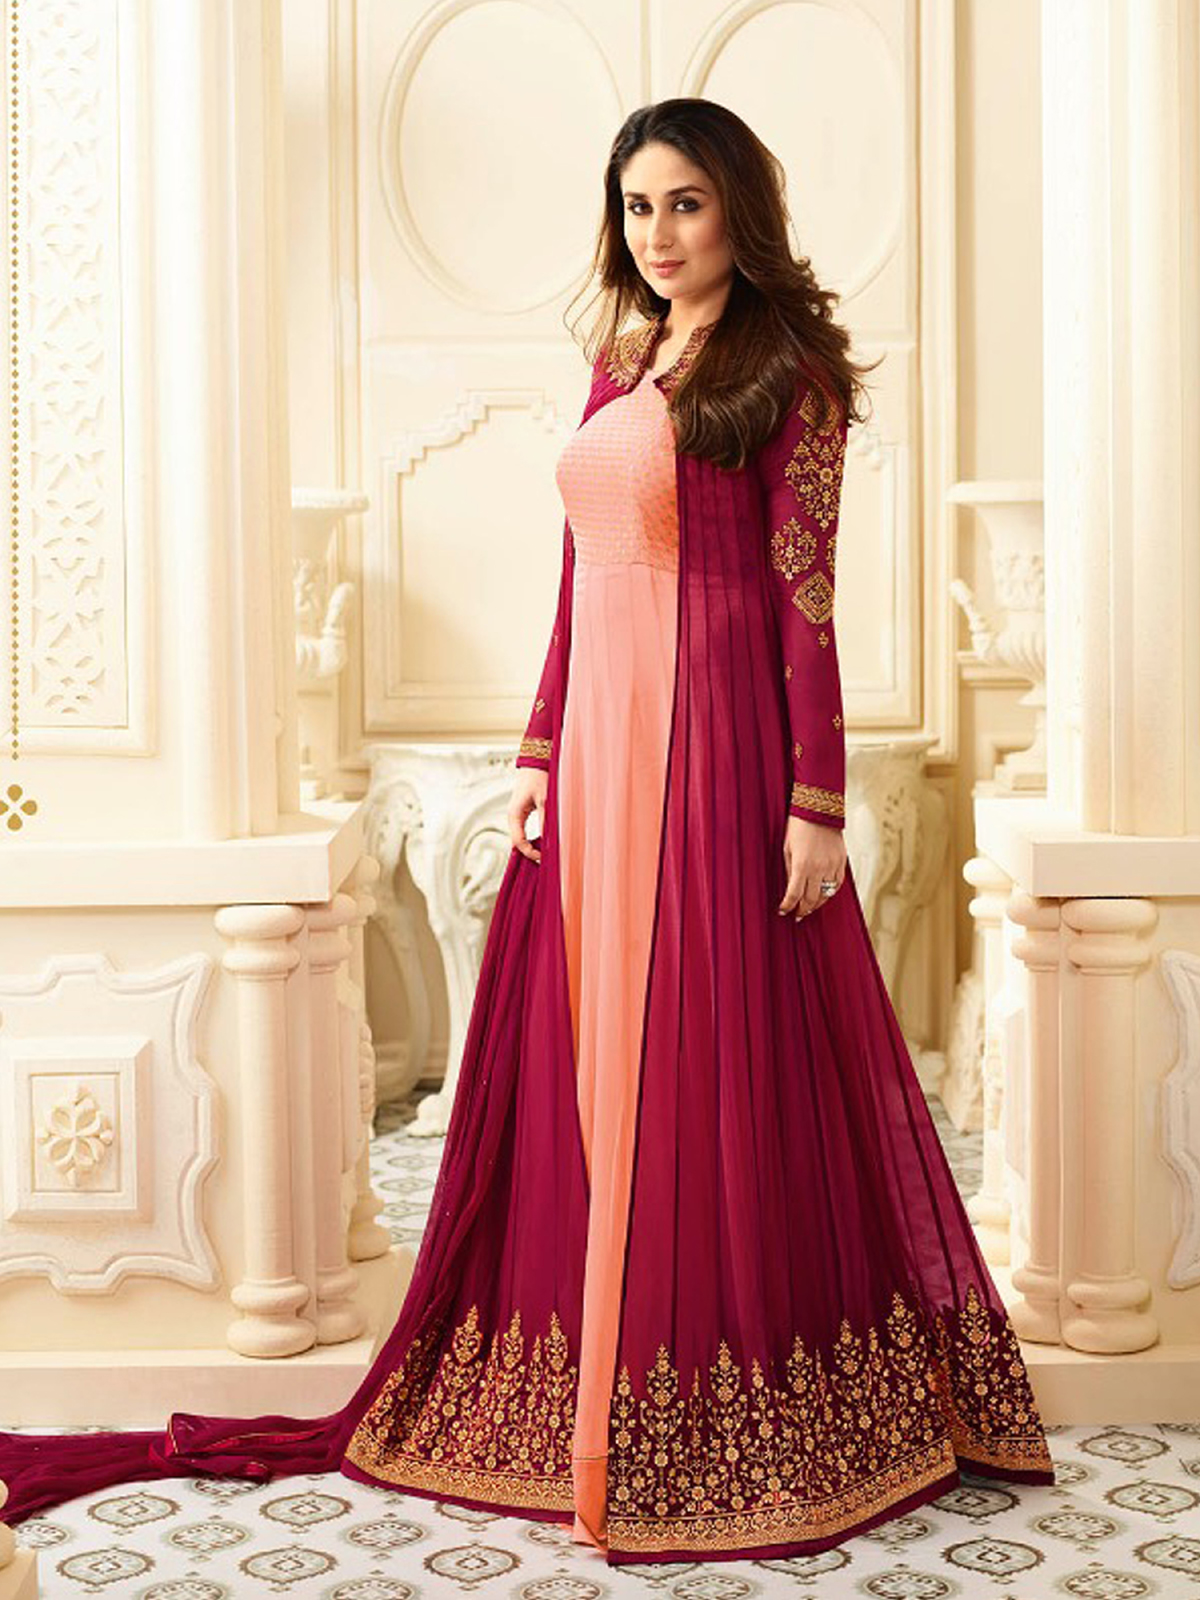 Kareena Kapoor Khan Designer Faux Georgette Latest Anarkali Salwar Suit